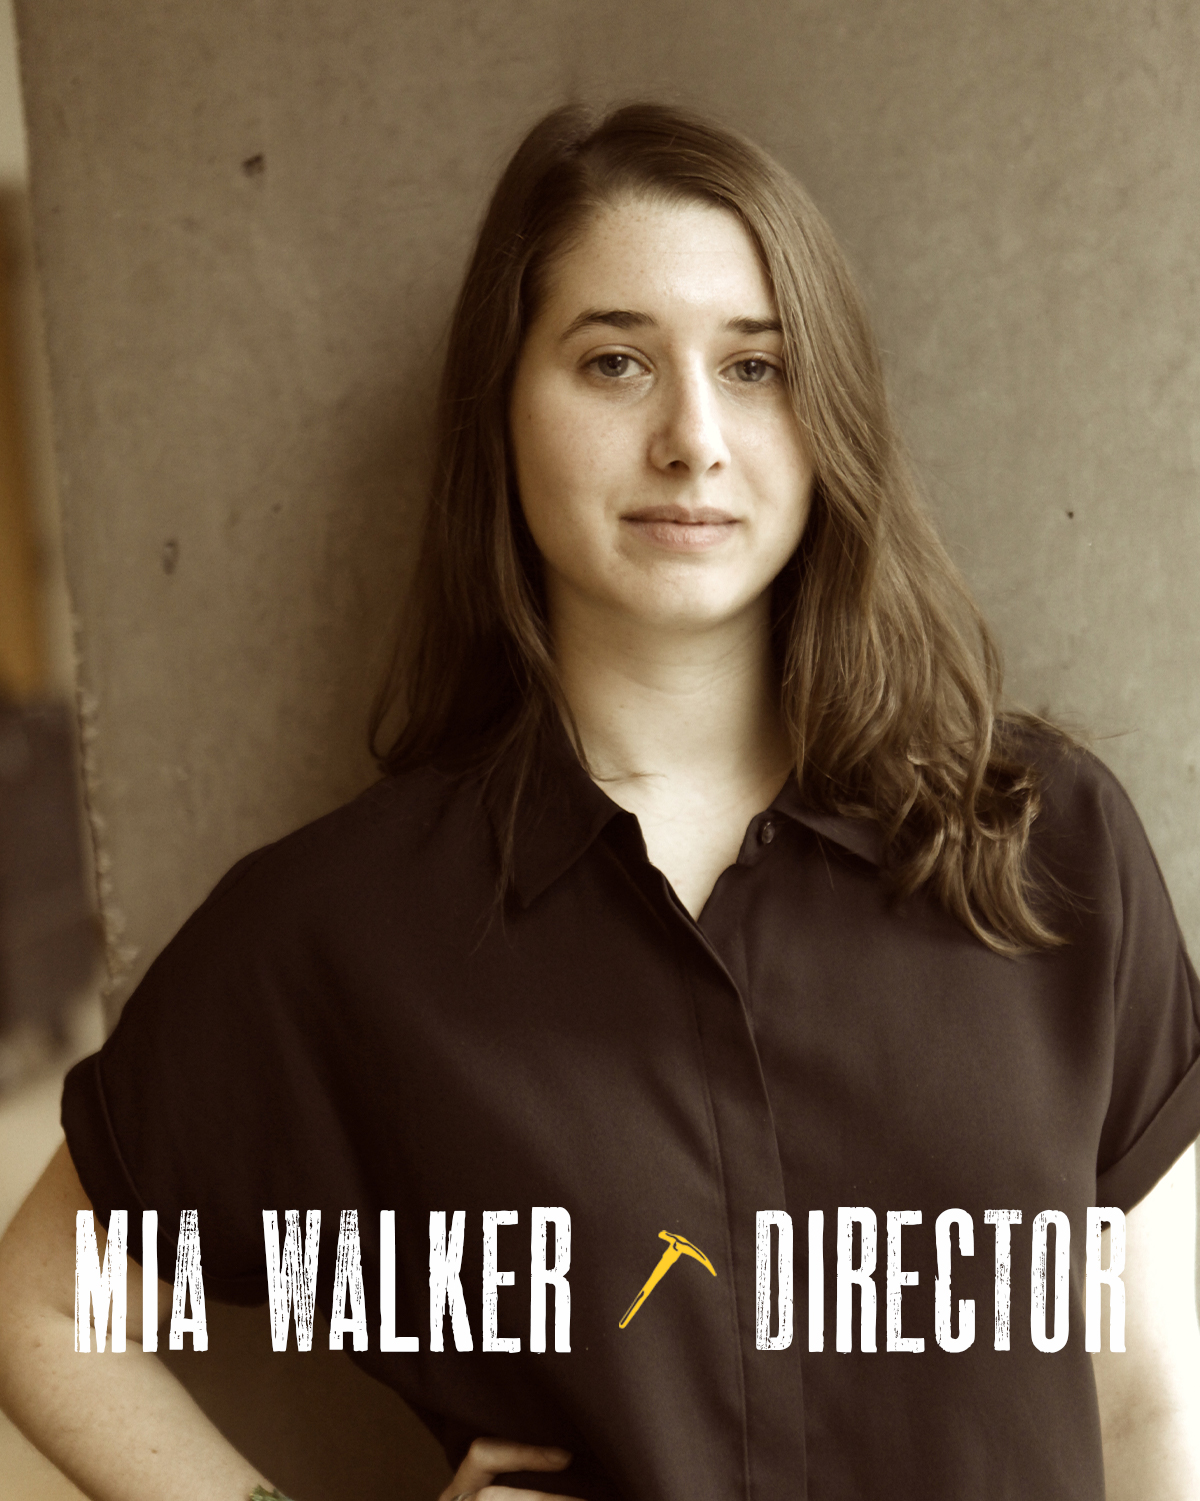 MIA WALKER  (Director) Off-Broadway/Regional directing: Fault Line Theatre ( All Nighter ); Encore Theatre ( Into the Wild ); Club Cumming ( Blind Date Project ); NYMF ( Normativity, Camp Wanatachi ); The Flea (Resident Director); Ensemble Studio Theatre ( Youngblood ), PCLO ( Pool Boy ). Upcoming: New works readings at Bay Street Theater, Premiere Stages, MultiStages, and TRU. Broadway/National Tour: Tour Director, current National Tour of  Finding Neverland  and the recent National Tour of  Pippin ; Associate Director,  Jagged Little Pill  (coming to Broadway Fall 2019) and  Waitress ; Assistant Director,  The Gershwins' Porgy and Bess ,  Pippin , and  Finding Neverland . Drama League Directing Fellow. B.A. Harvard University.  www.miapwalker.com